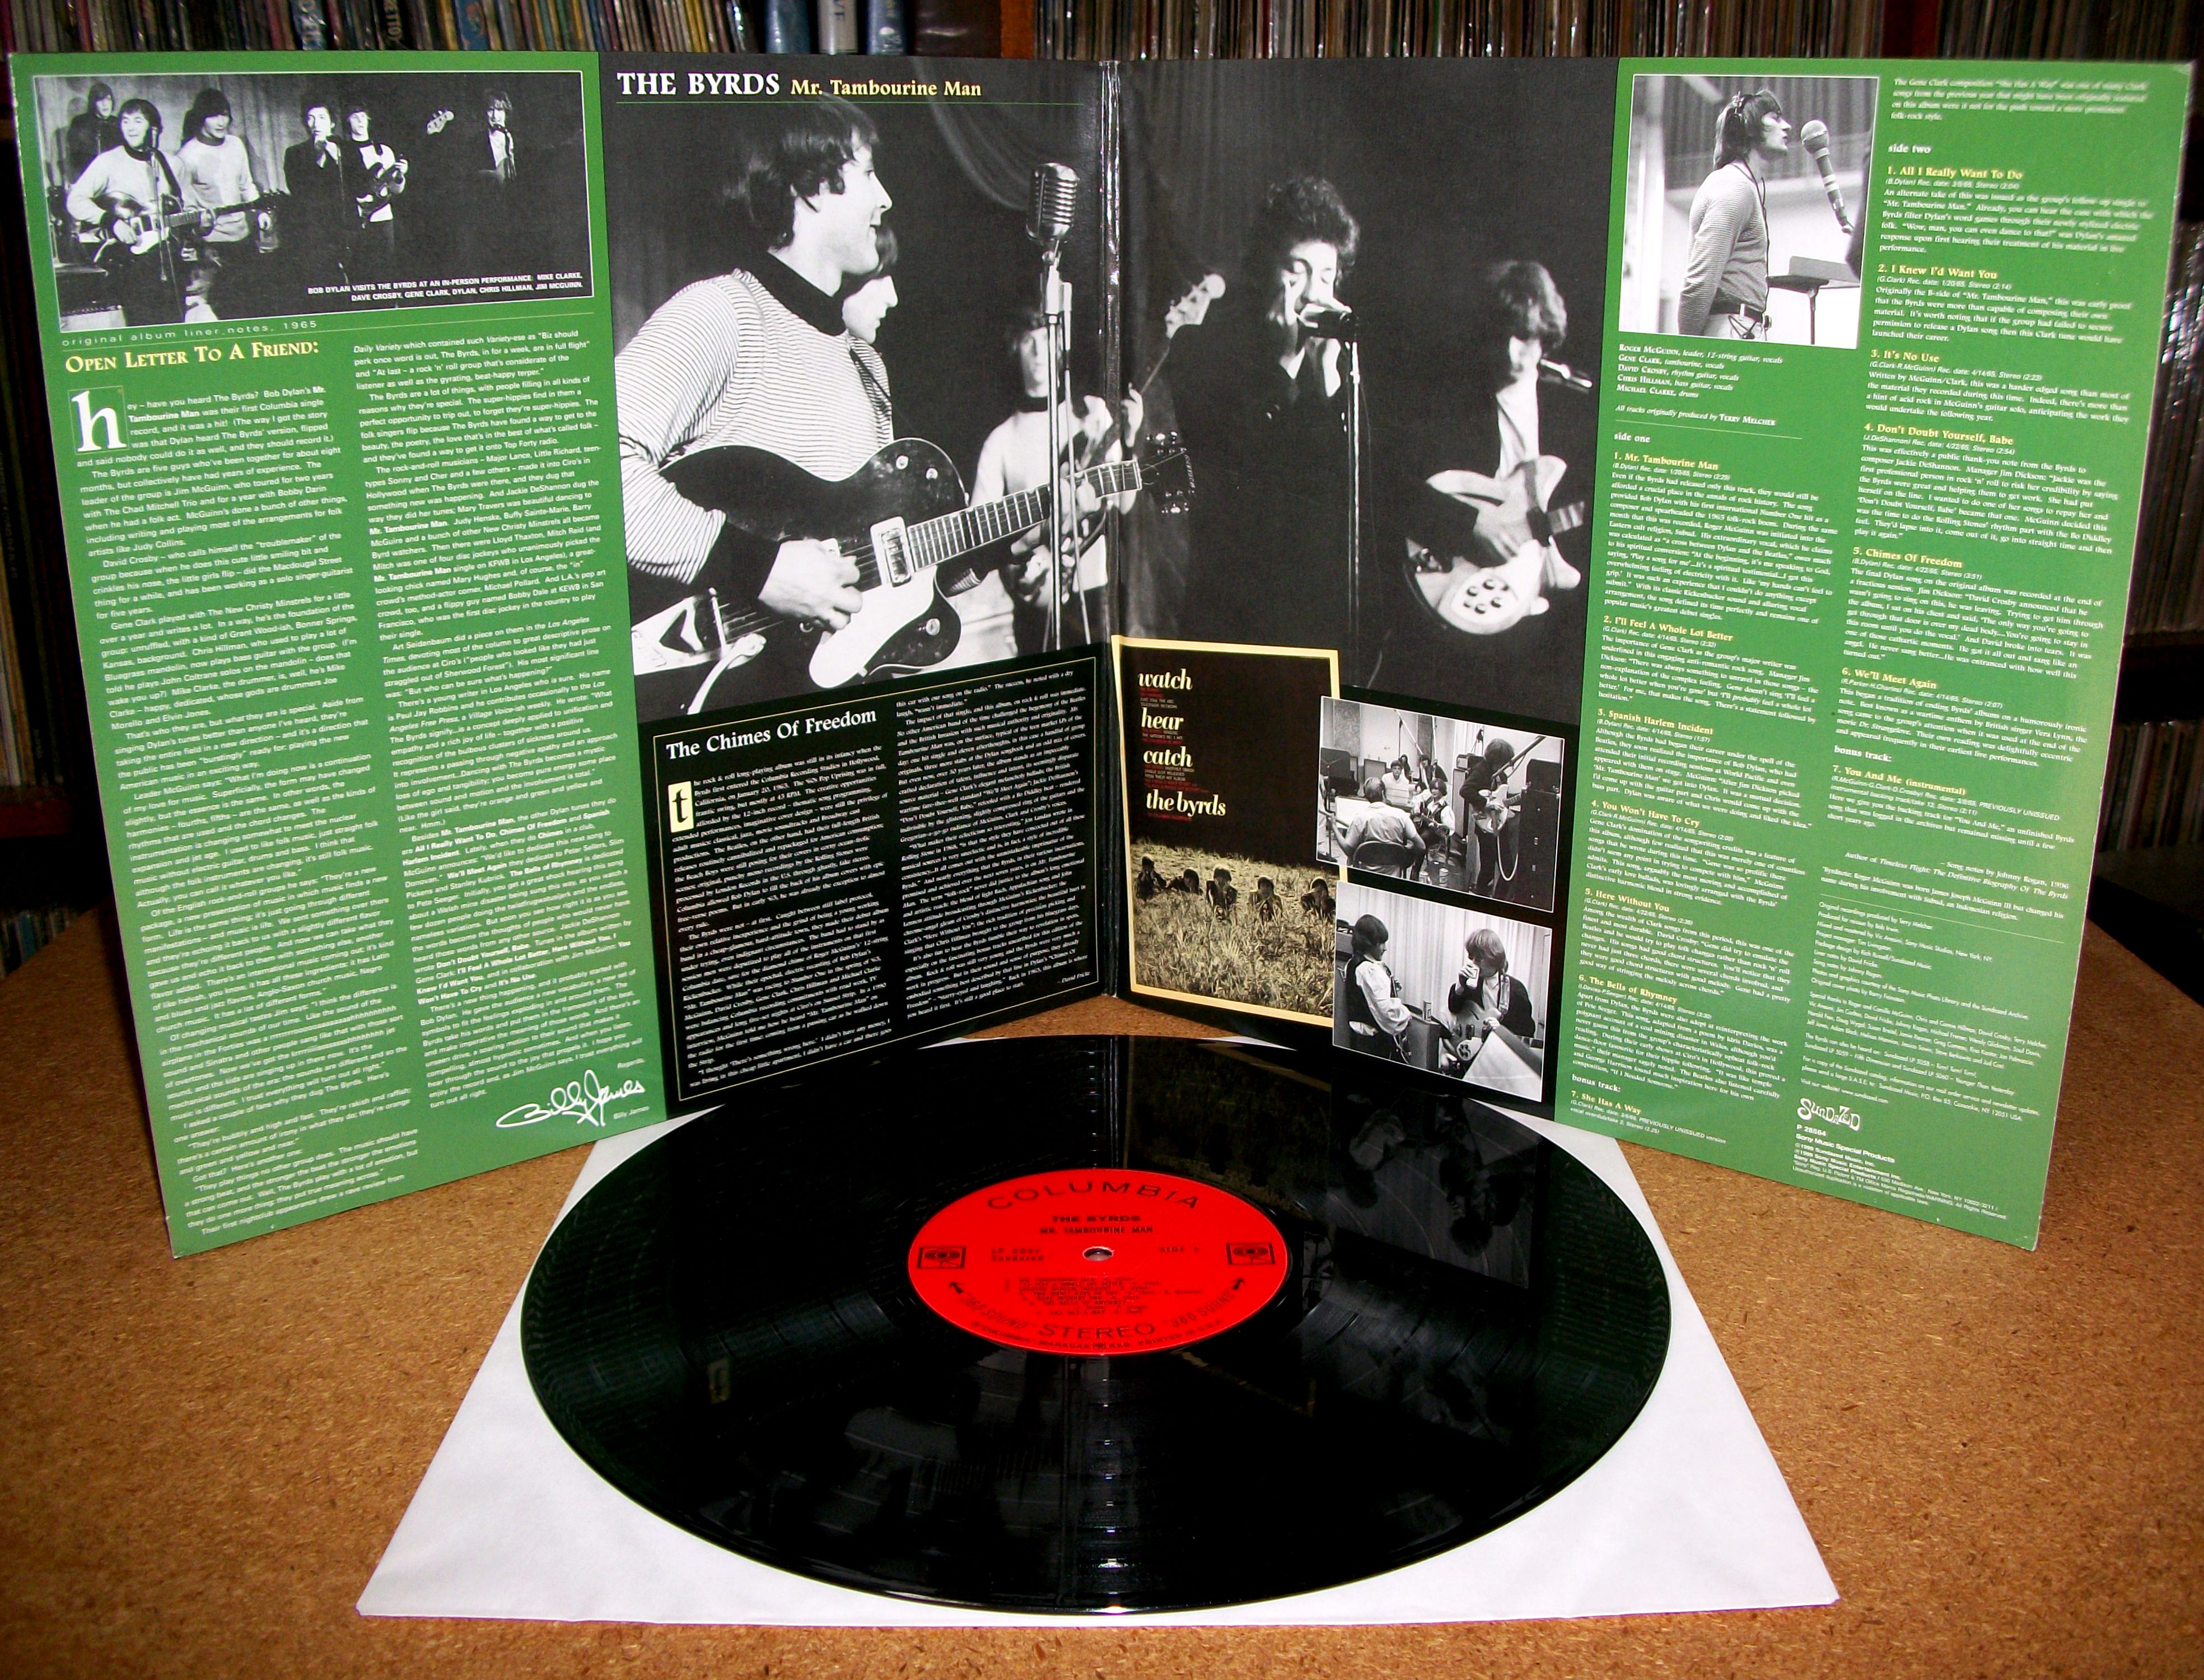 Sinister Vinyl Collection The Byrds Mr Tambourine Man 1965